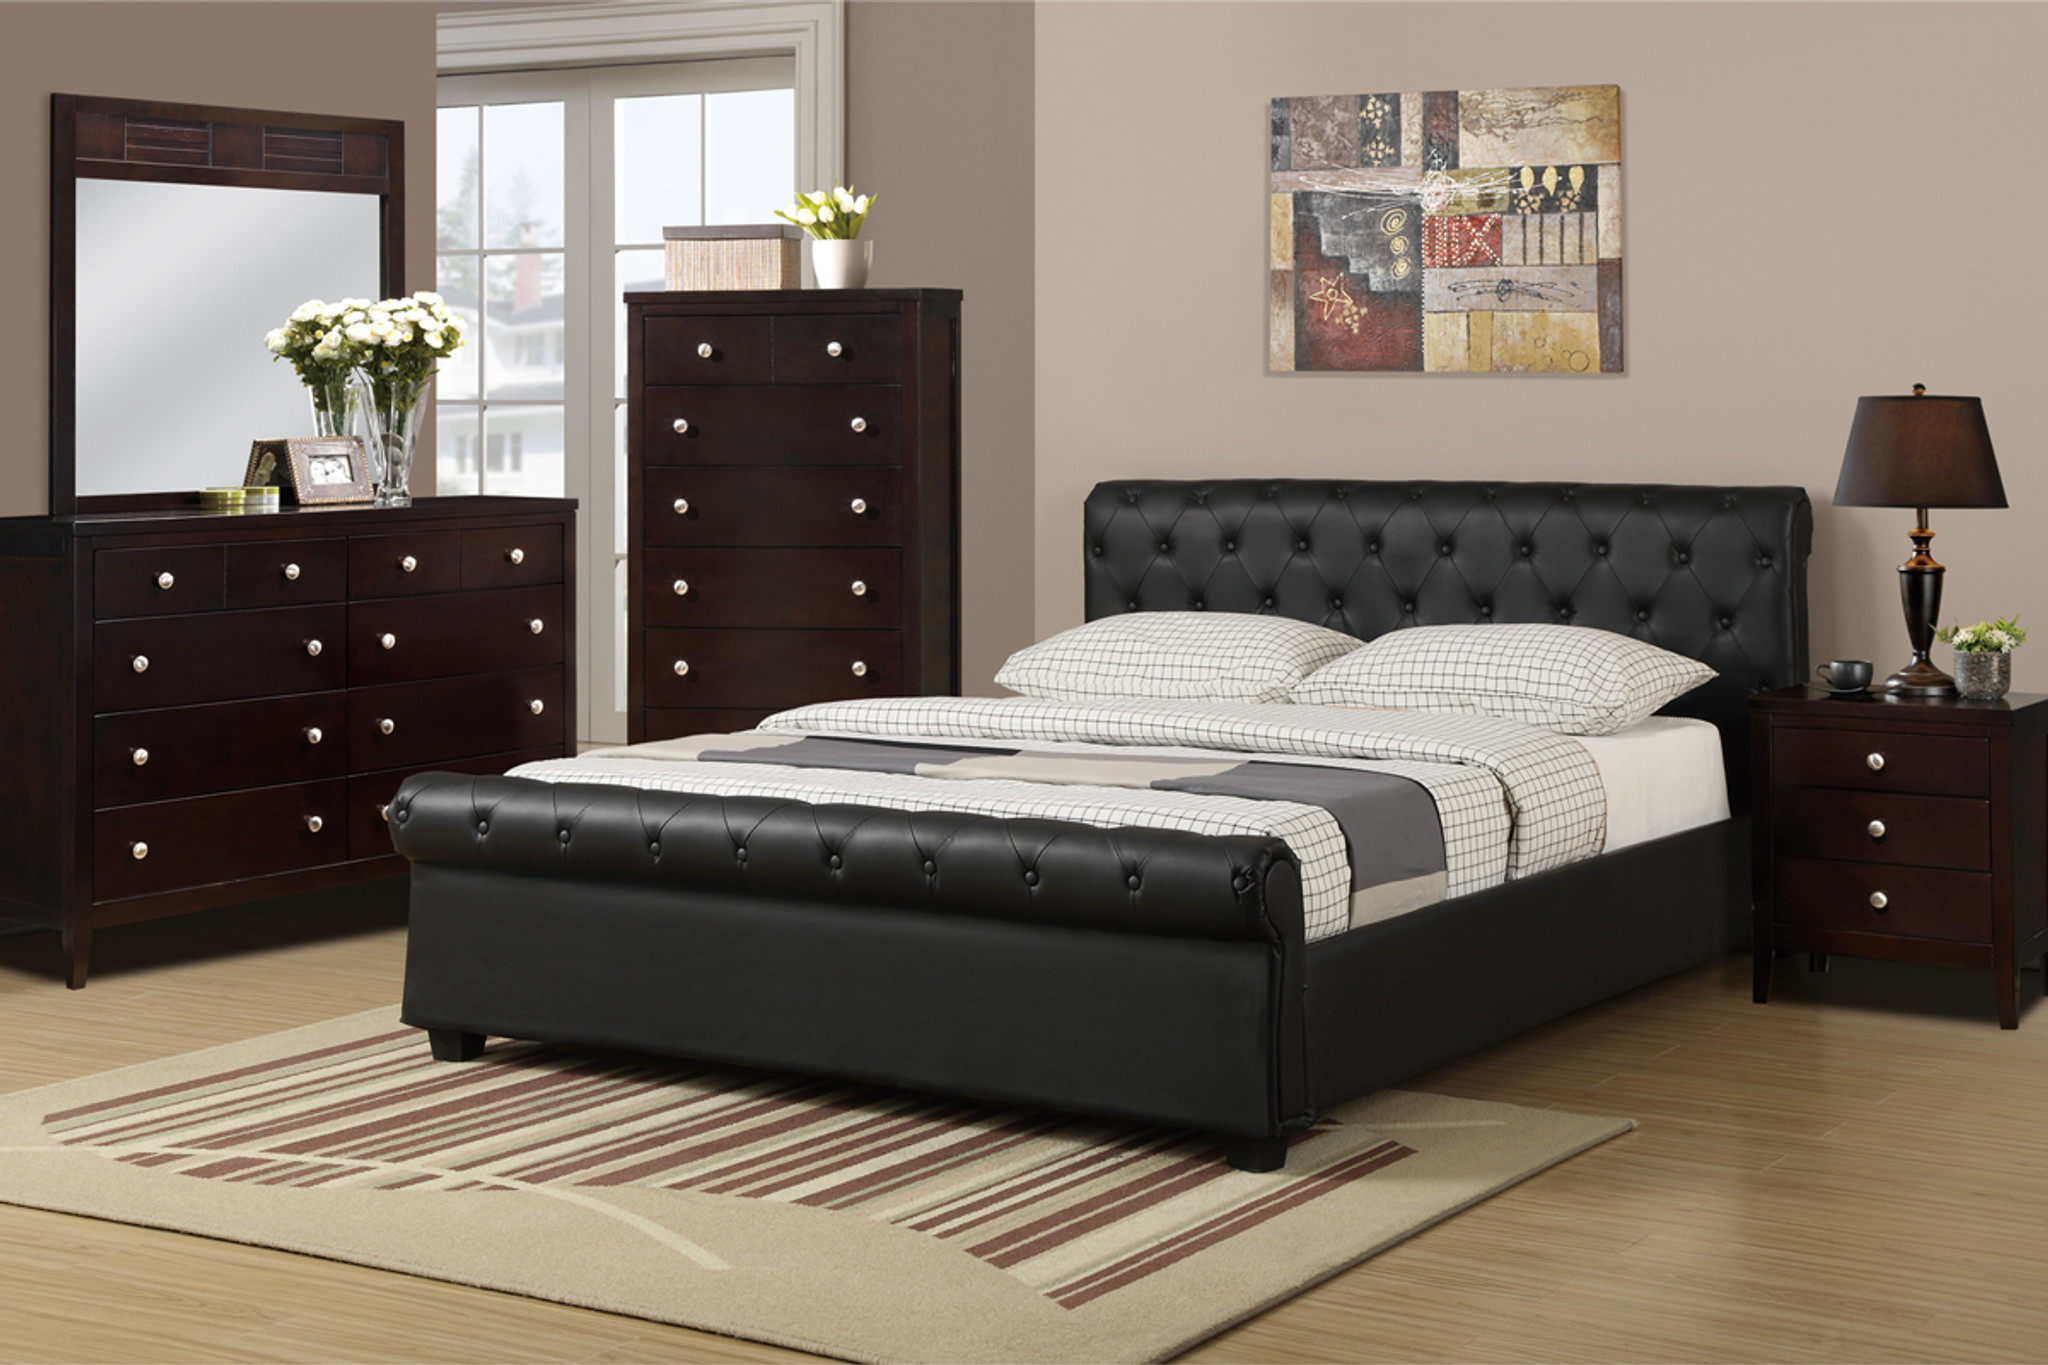 Kassa Mall Home Furniture F9246f Q Accented Full Queen Size Bed Platform Upholstered In Black Leather